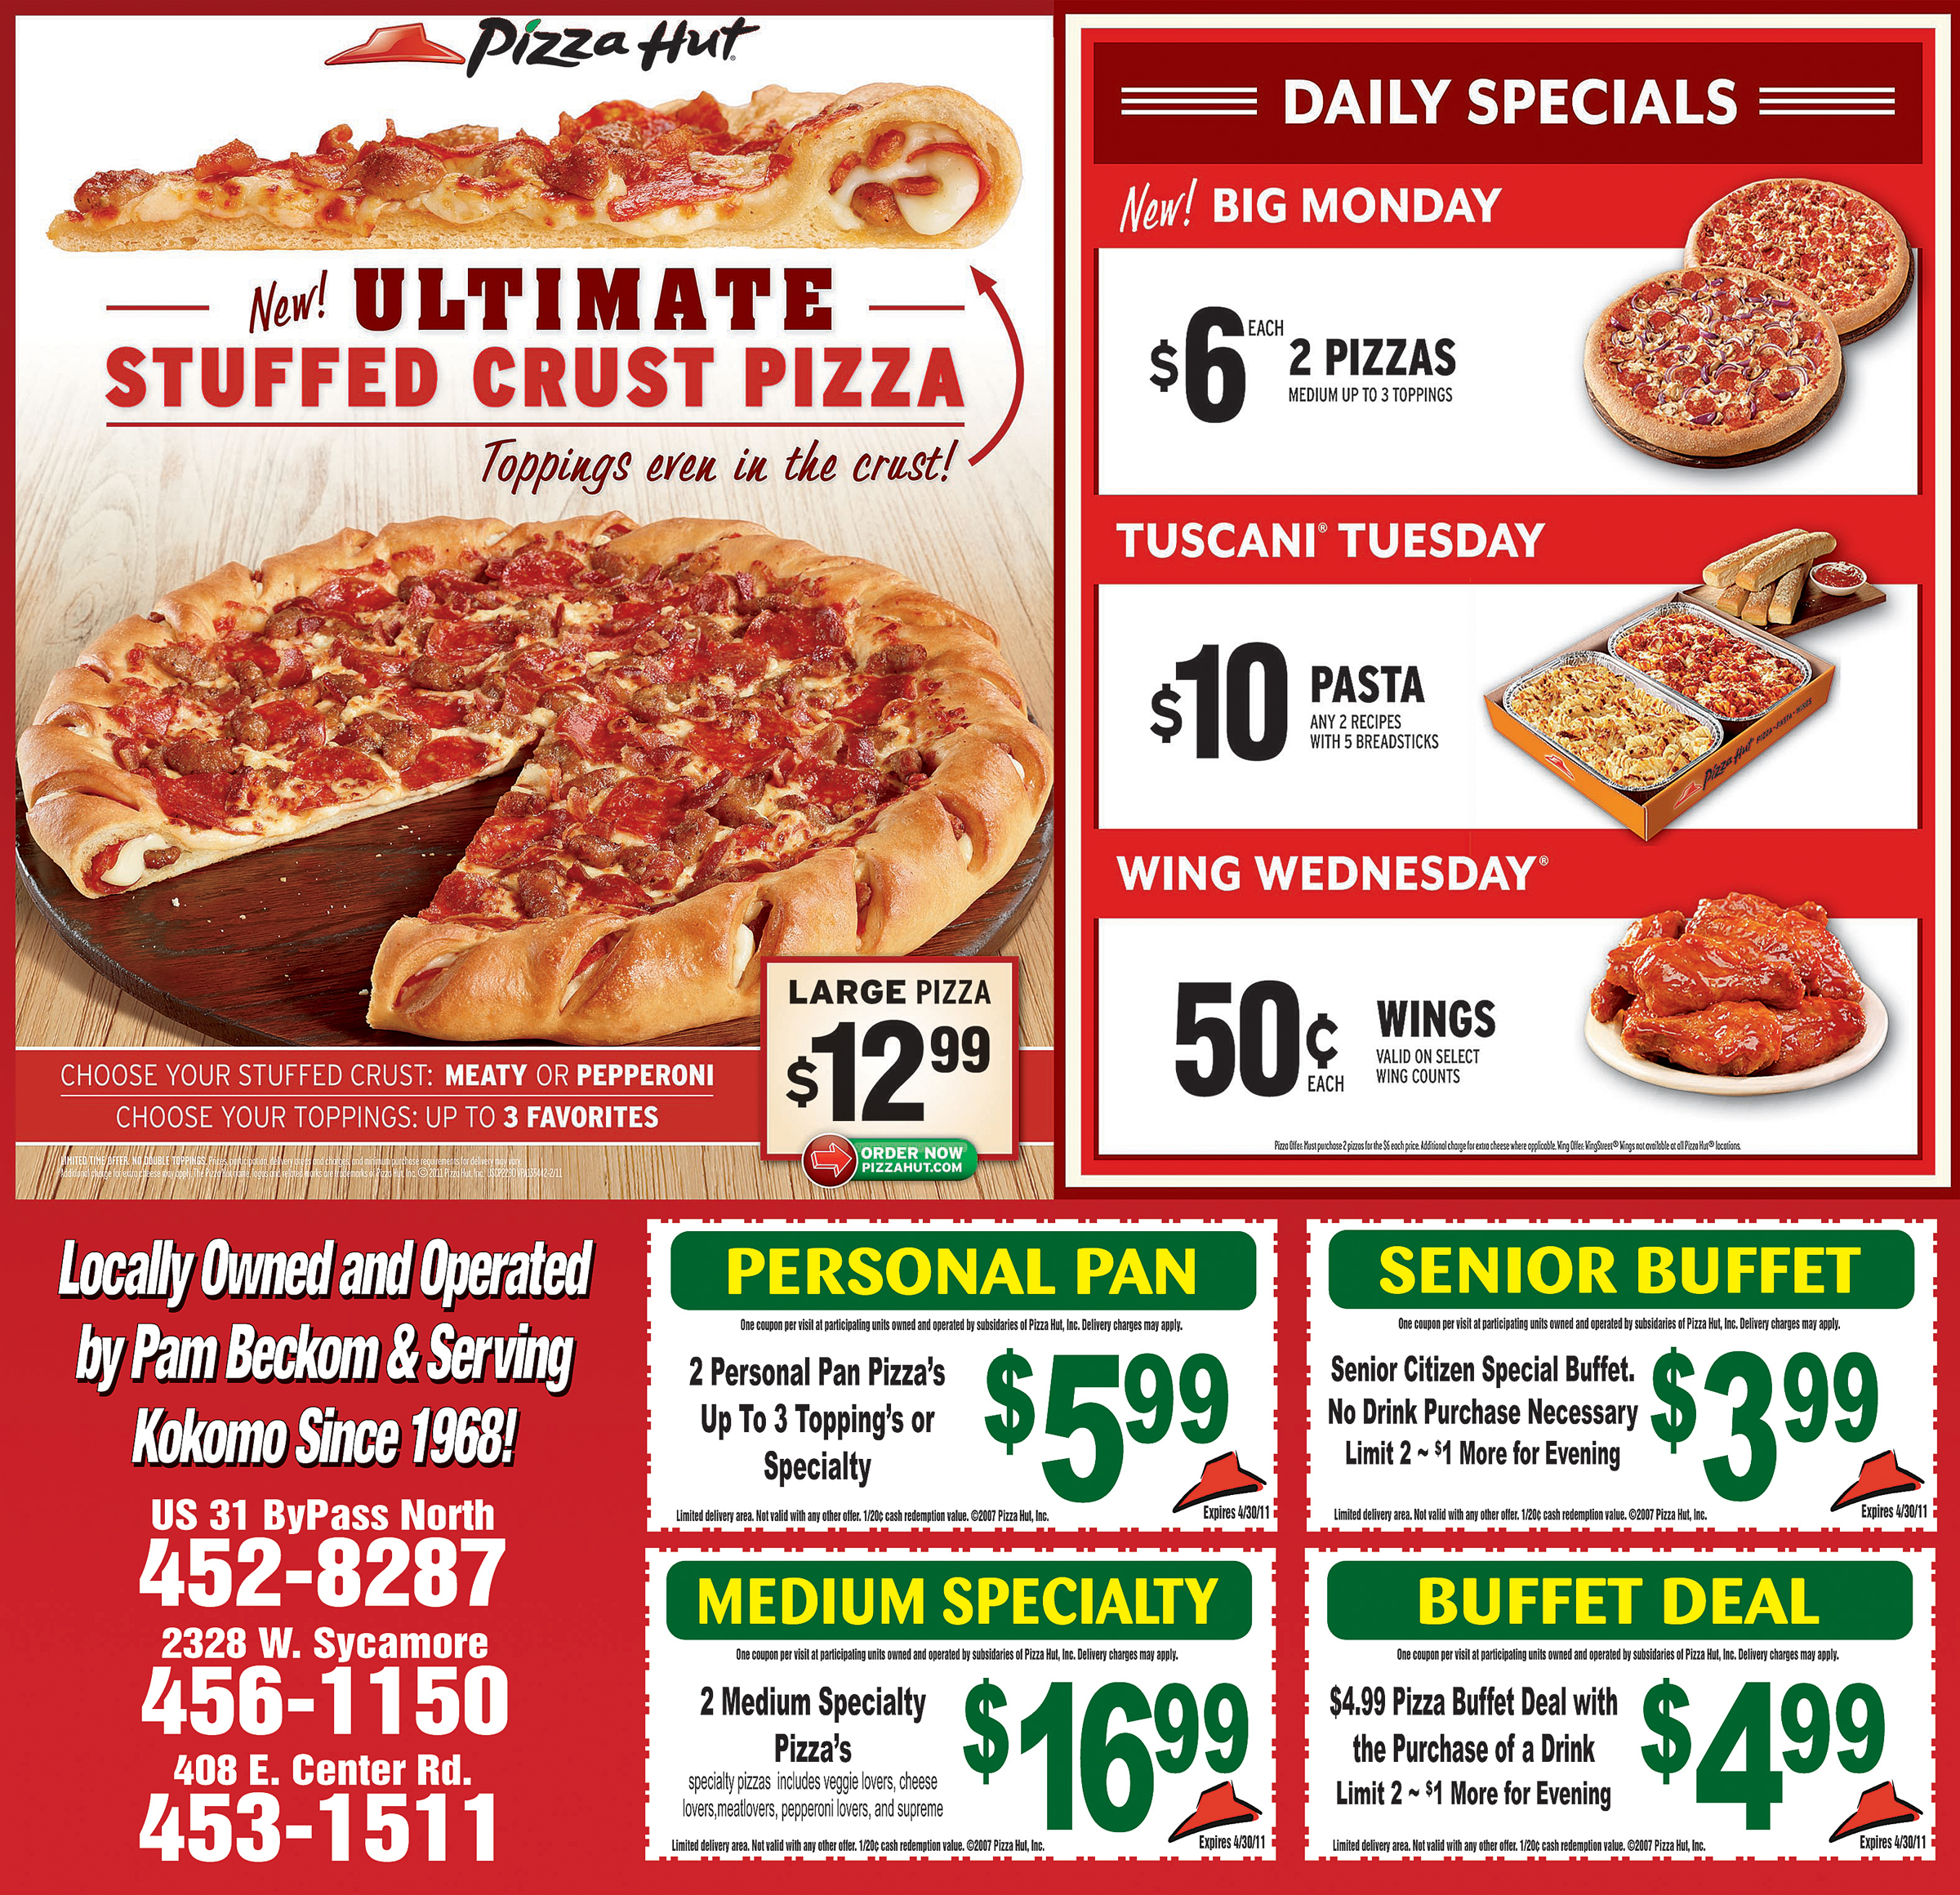 Discount coupons for pizza inn